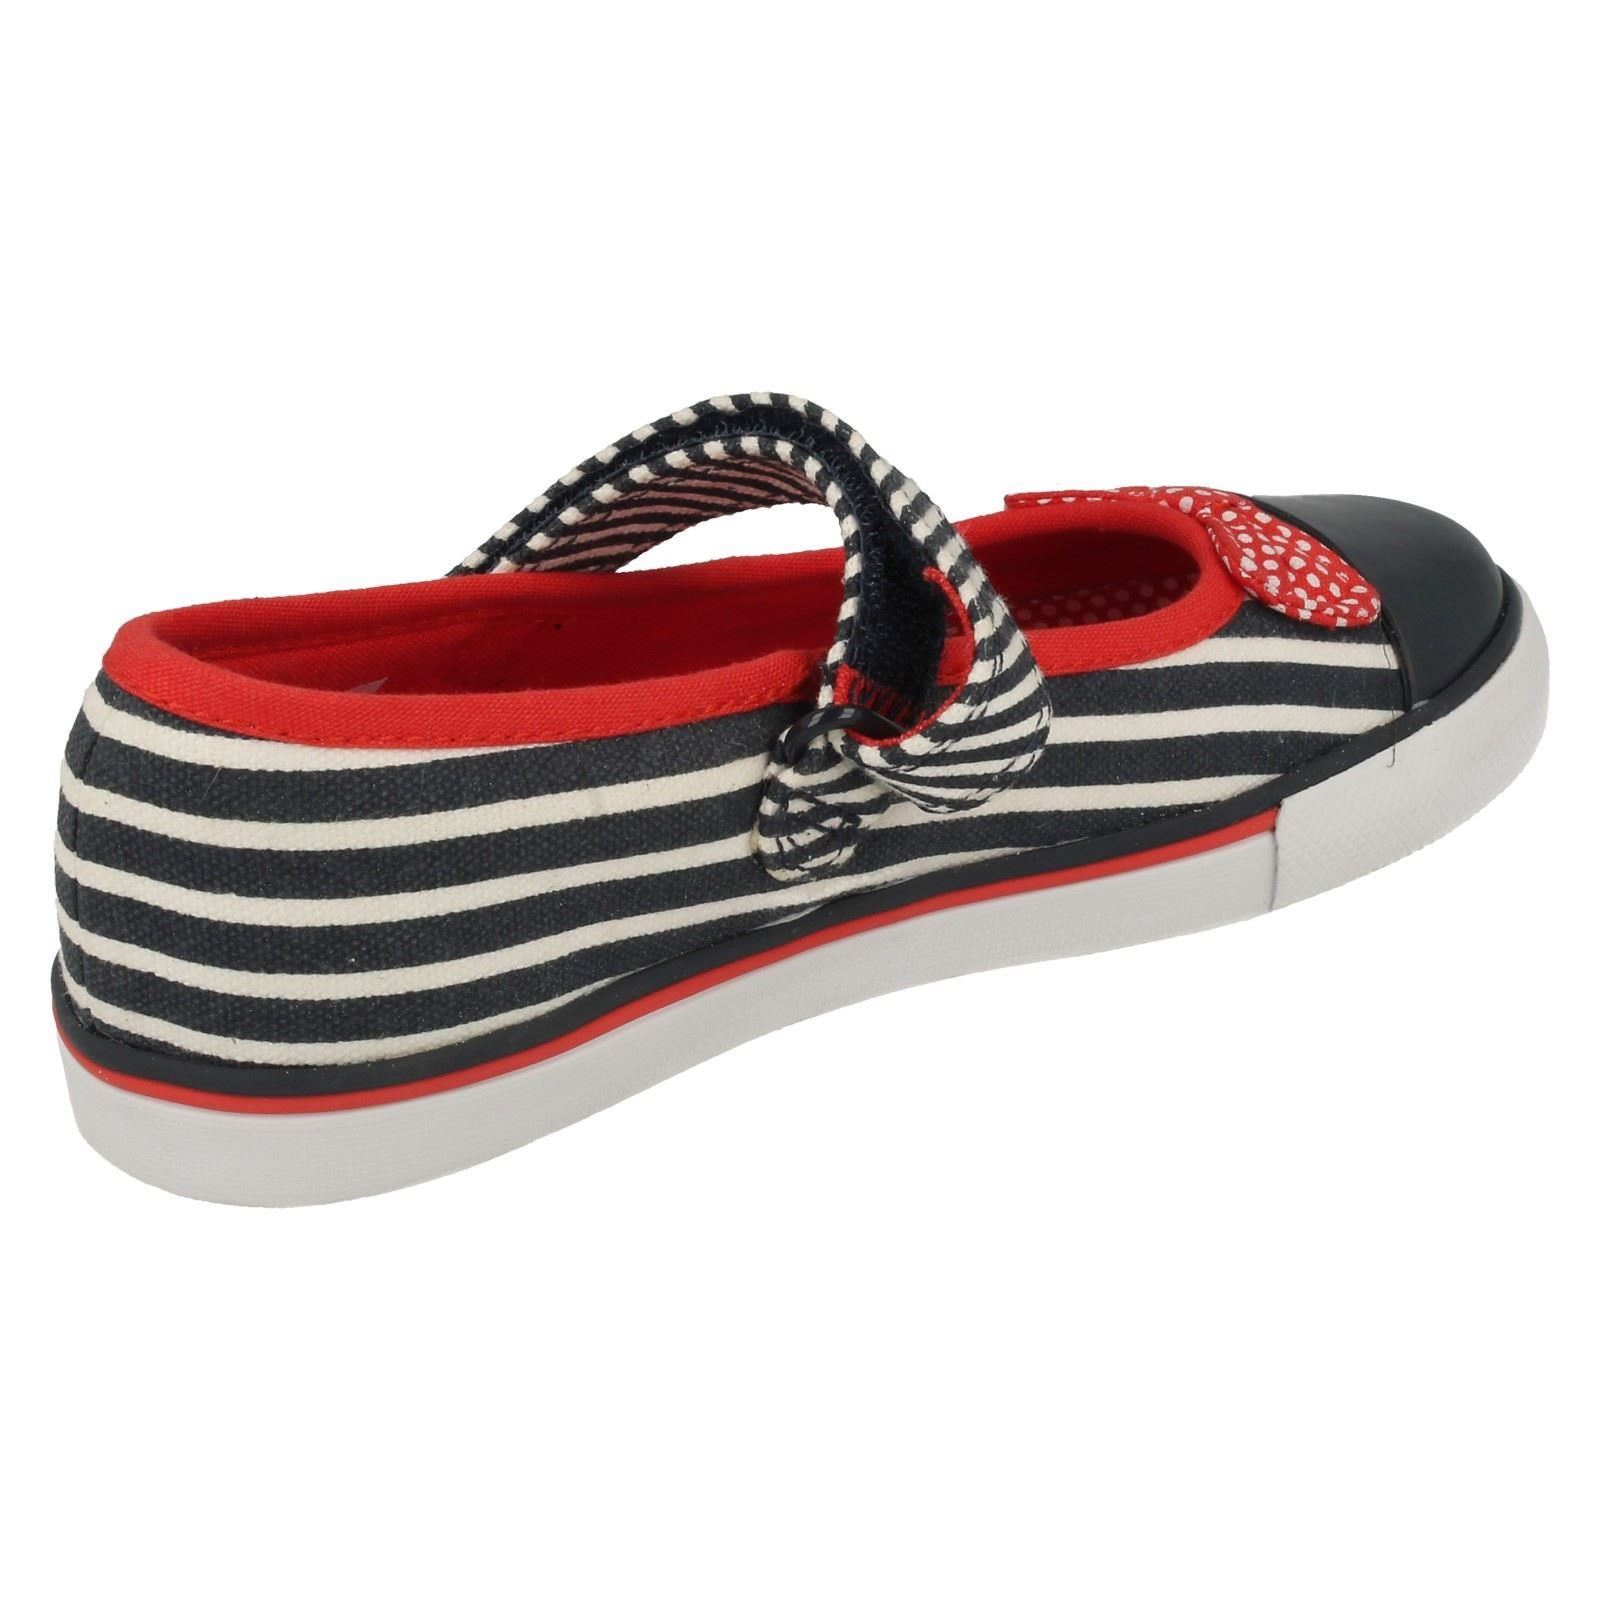 Girls Clarks Washable Canvas Shoes Gracie Joy